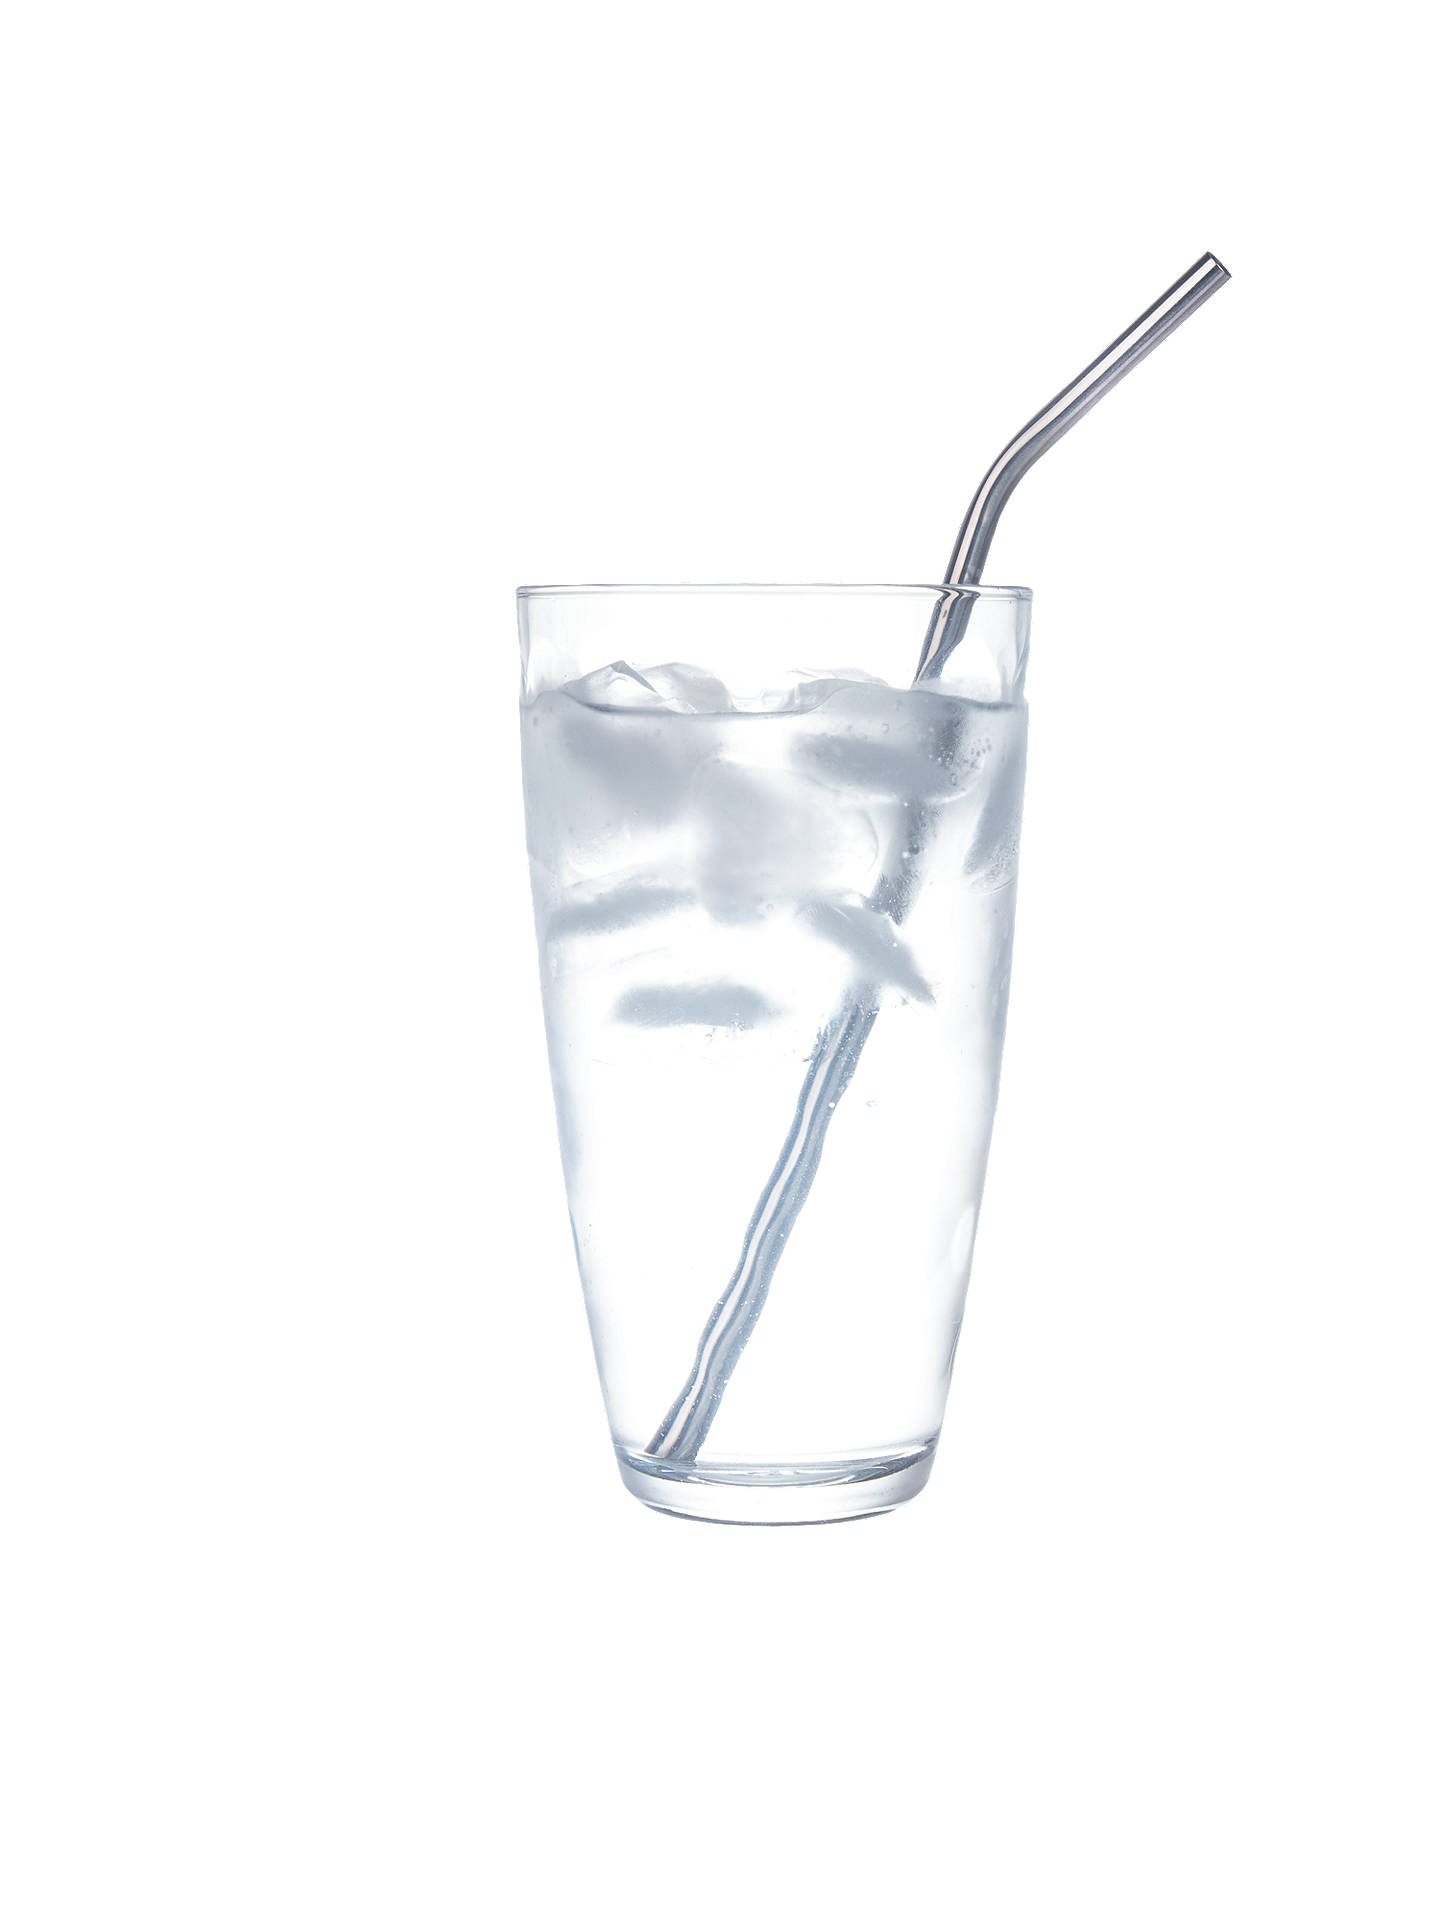 BuyMixology Stainless Steel Freezable Straws, Pack of 6, Silver Online at johnlewis.com